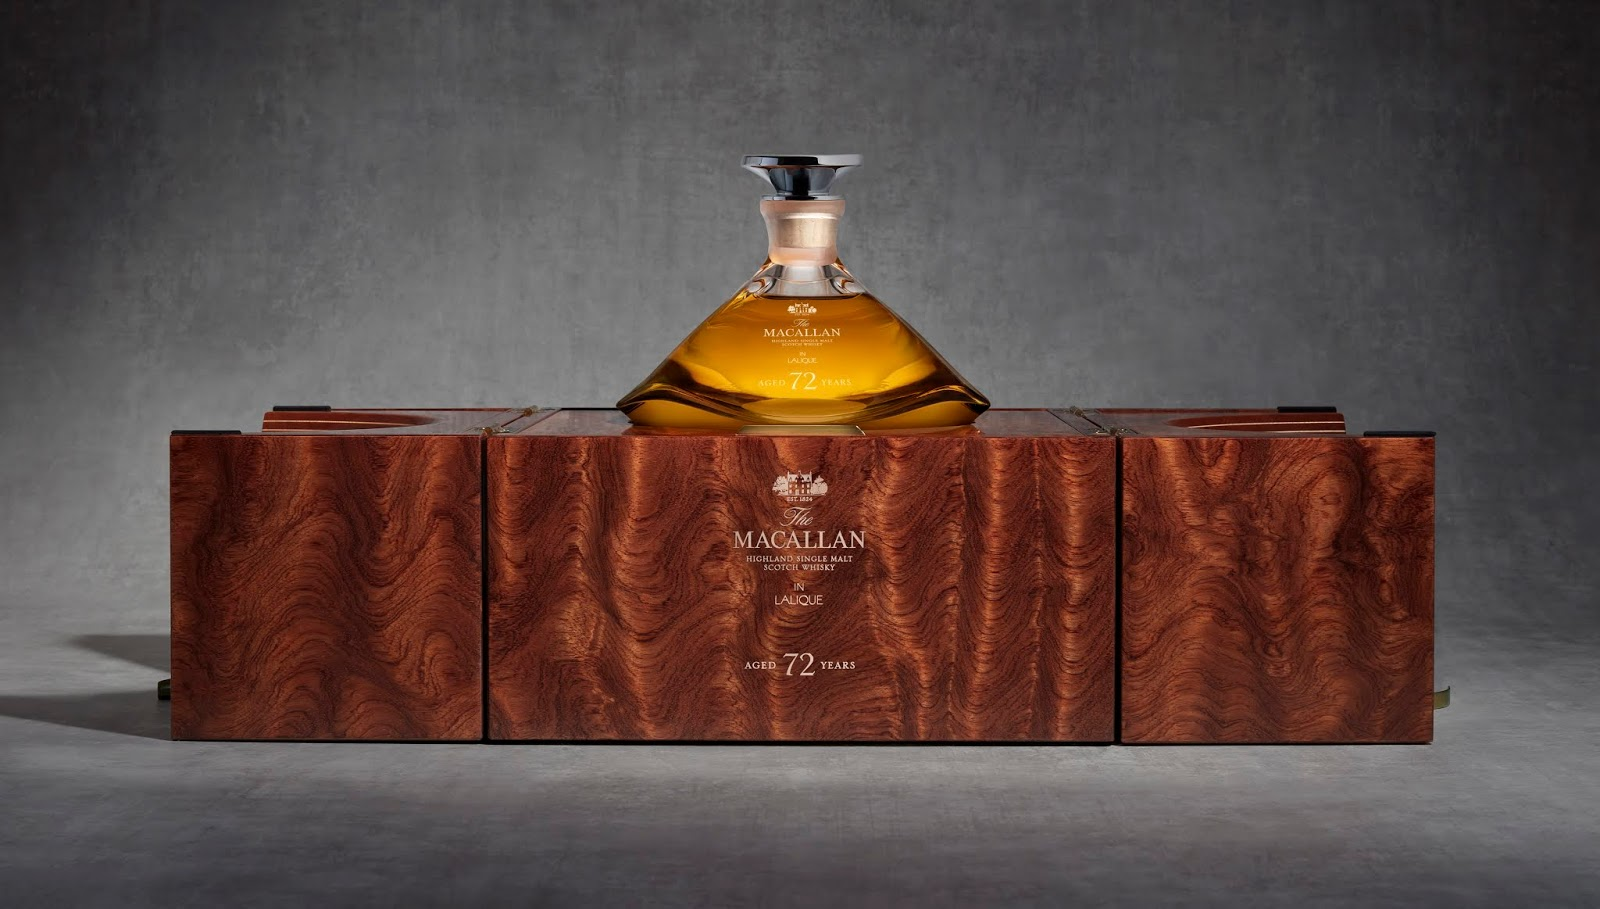 The Macallan 72 Year Old in Lalique - The Genesis Decanter